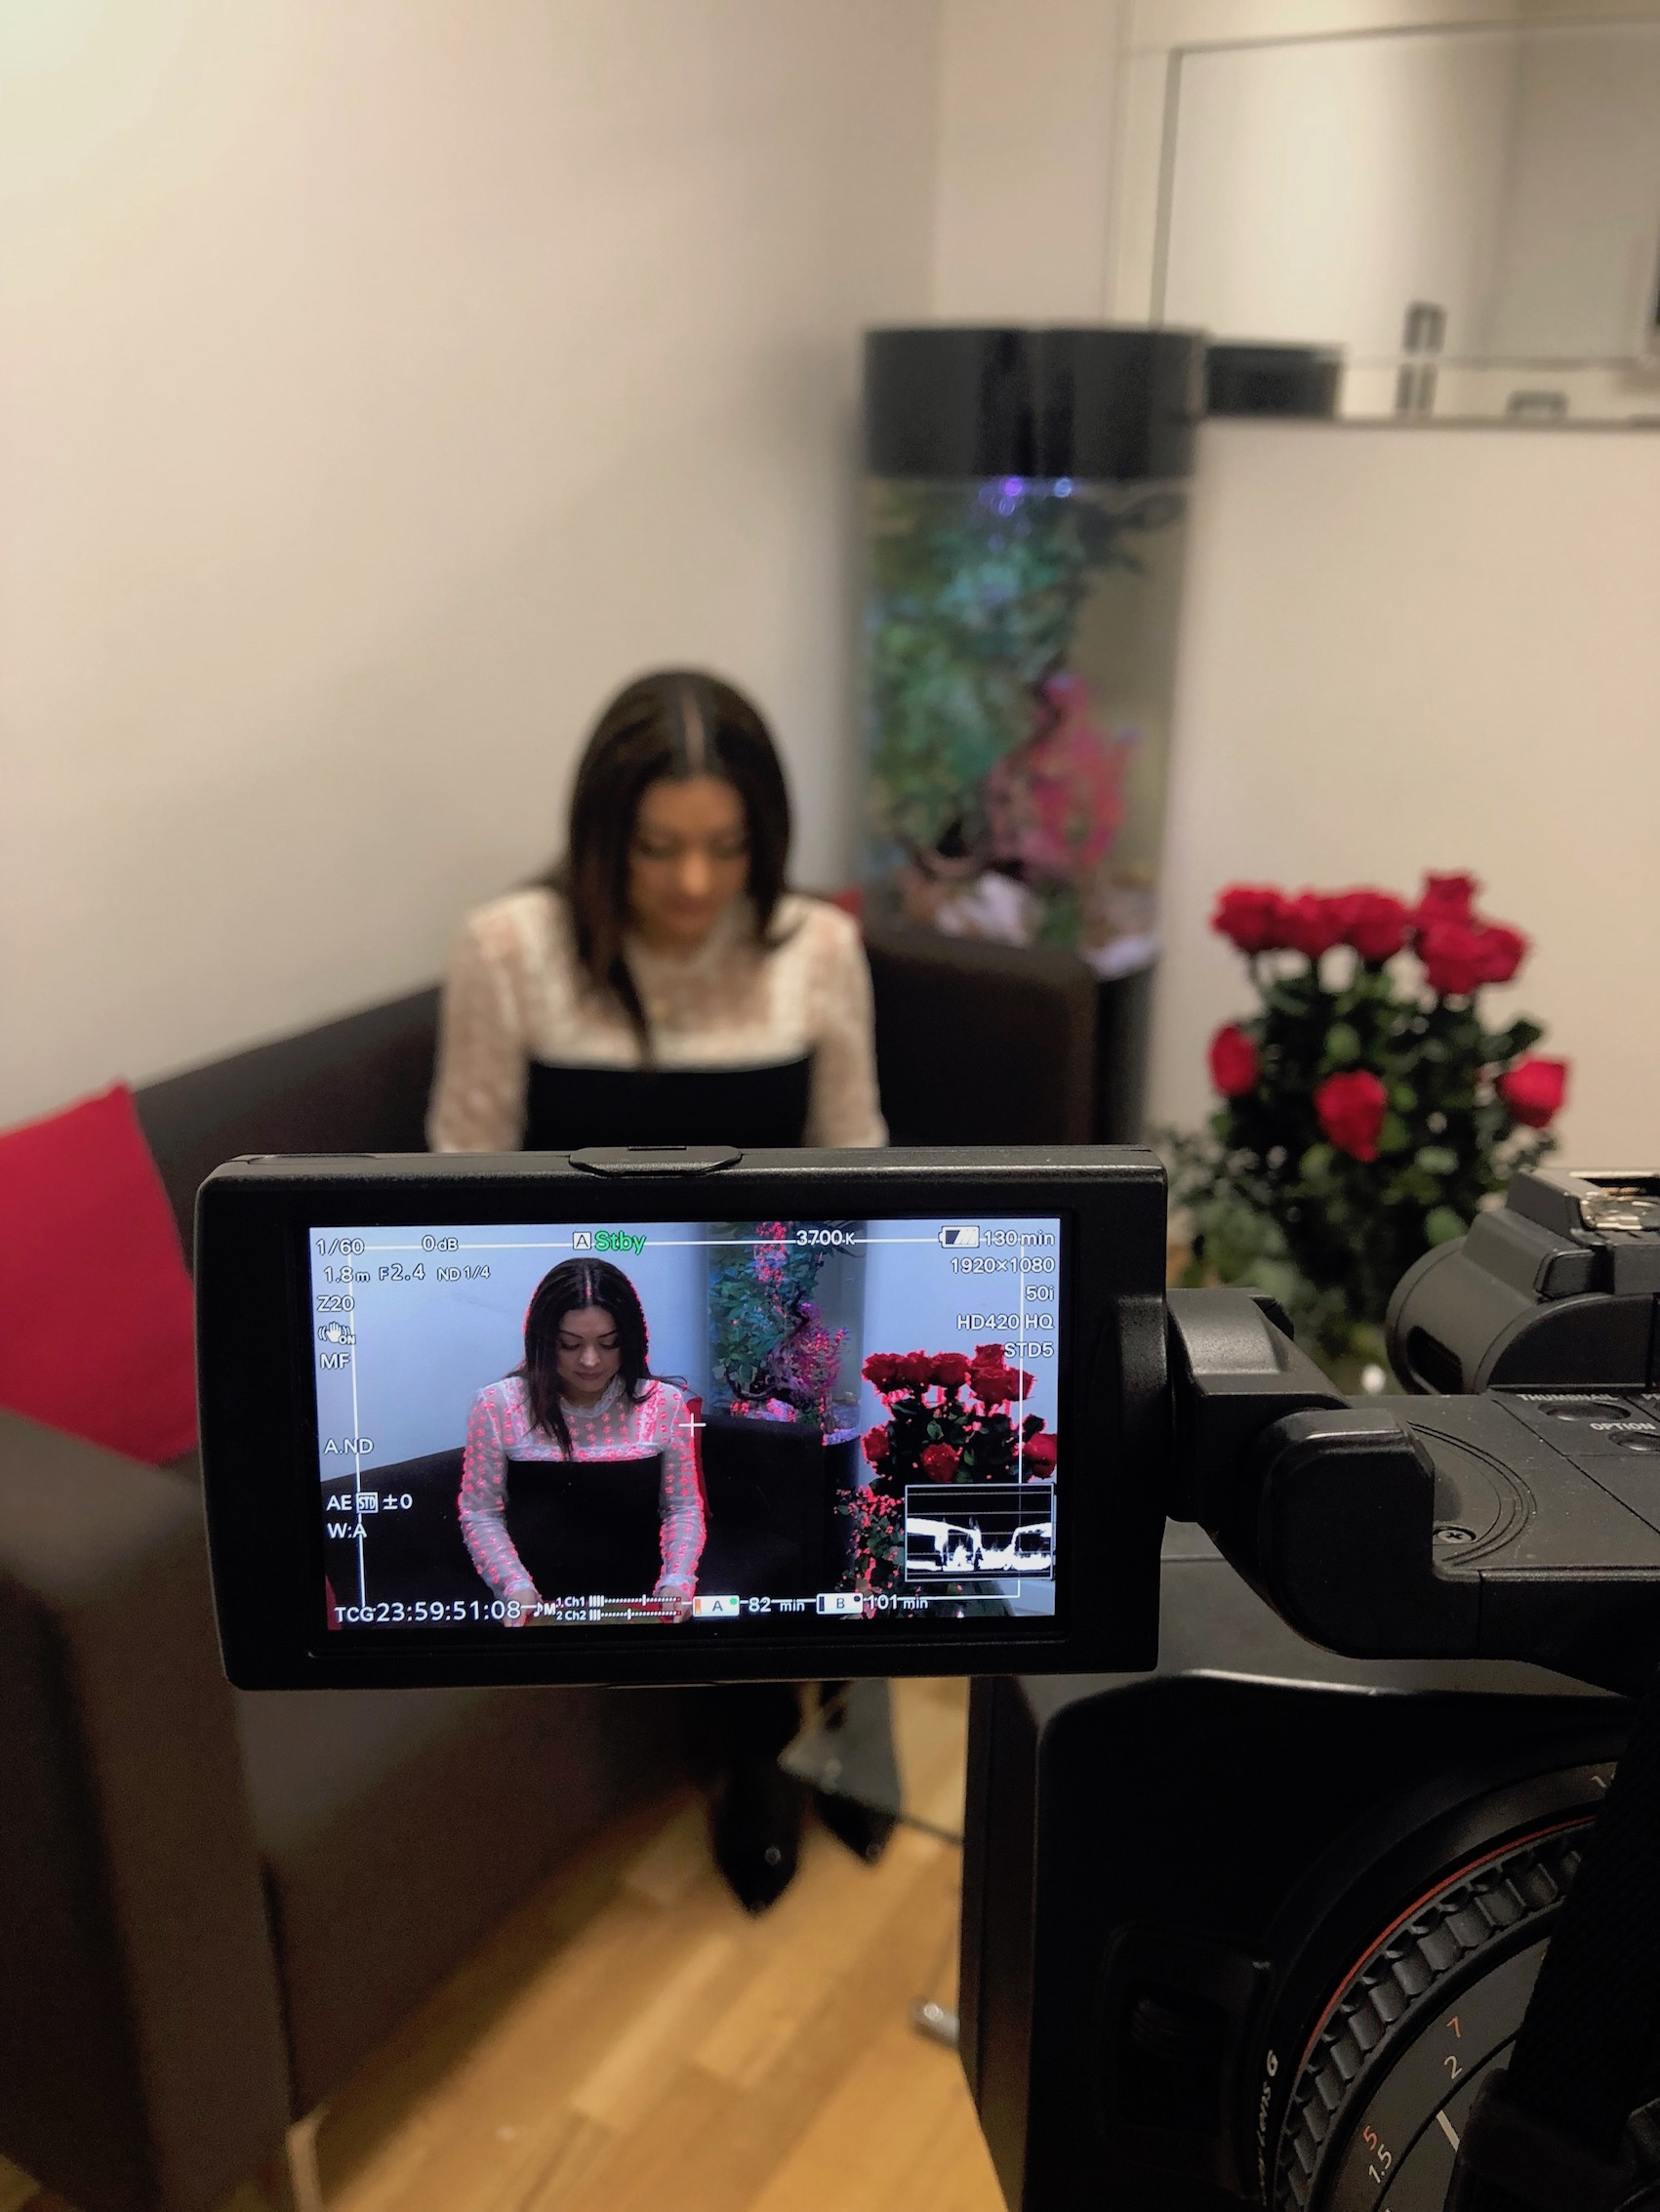 Priya was featured on TV news channel TRTWorld / SKY 516 for a 30 min feature on Feng Shui in business. The channel filmed her at her clients premises ' Sameday Doctor' a private GP practice in Canary Wharf London (March 2019).